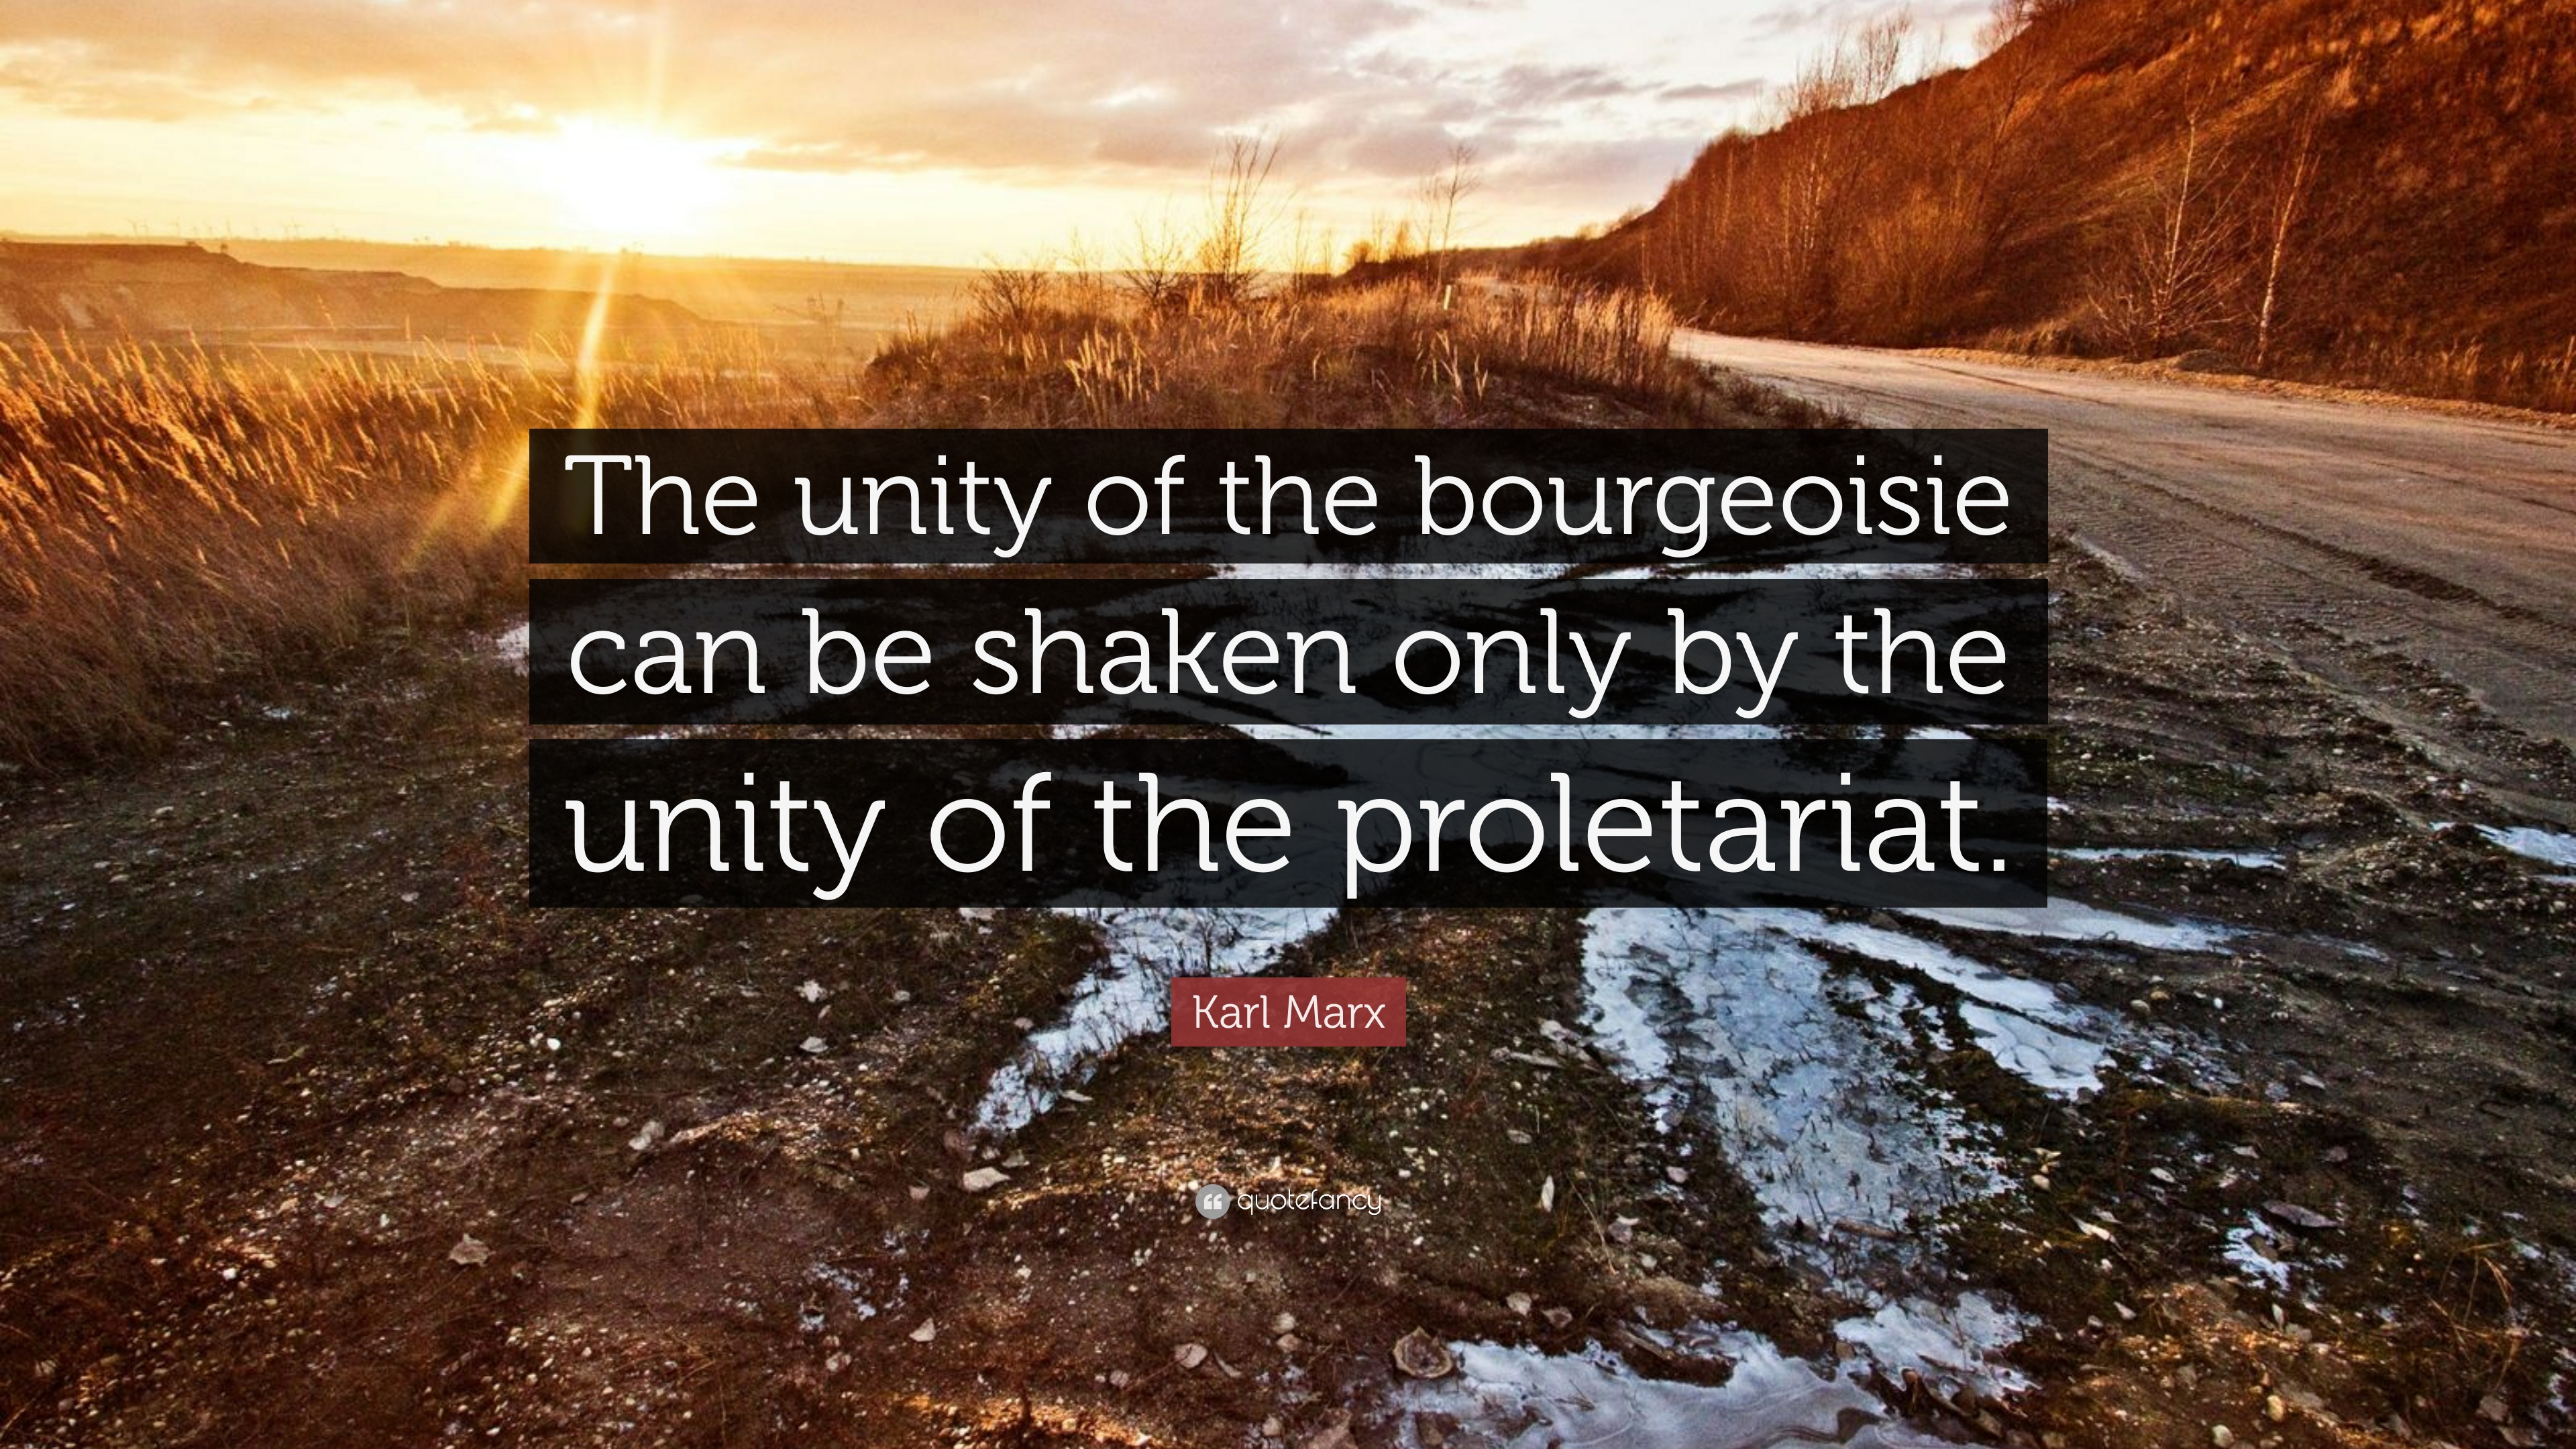 who are the bourgeoisie according to karl marx